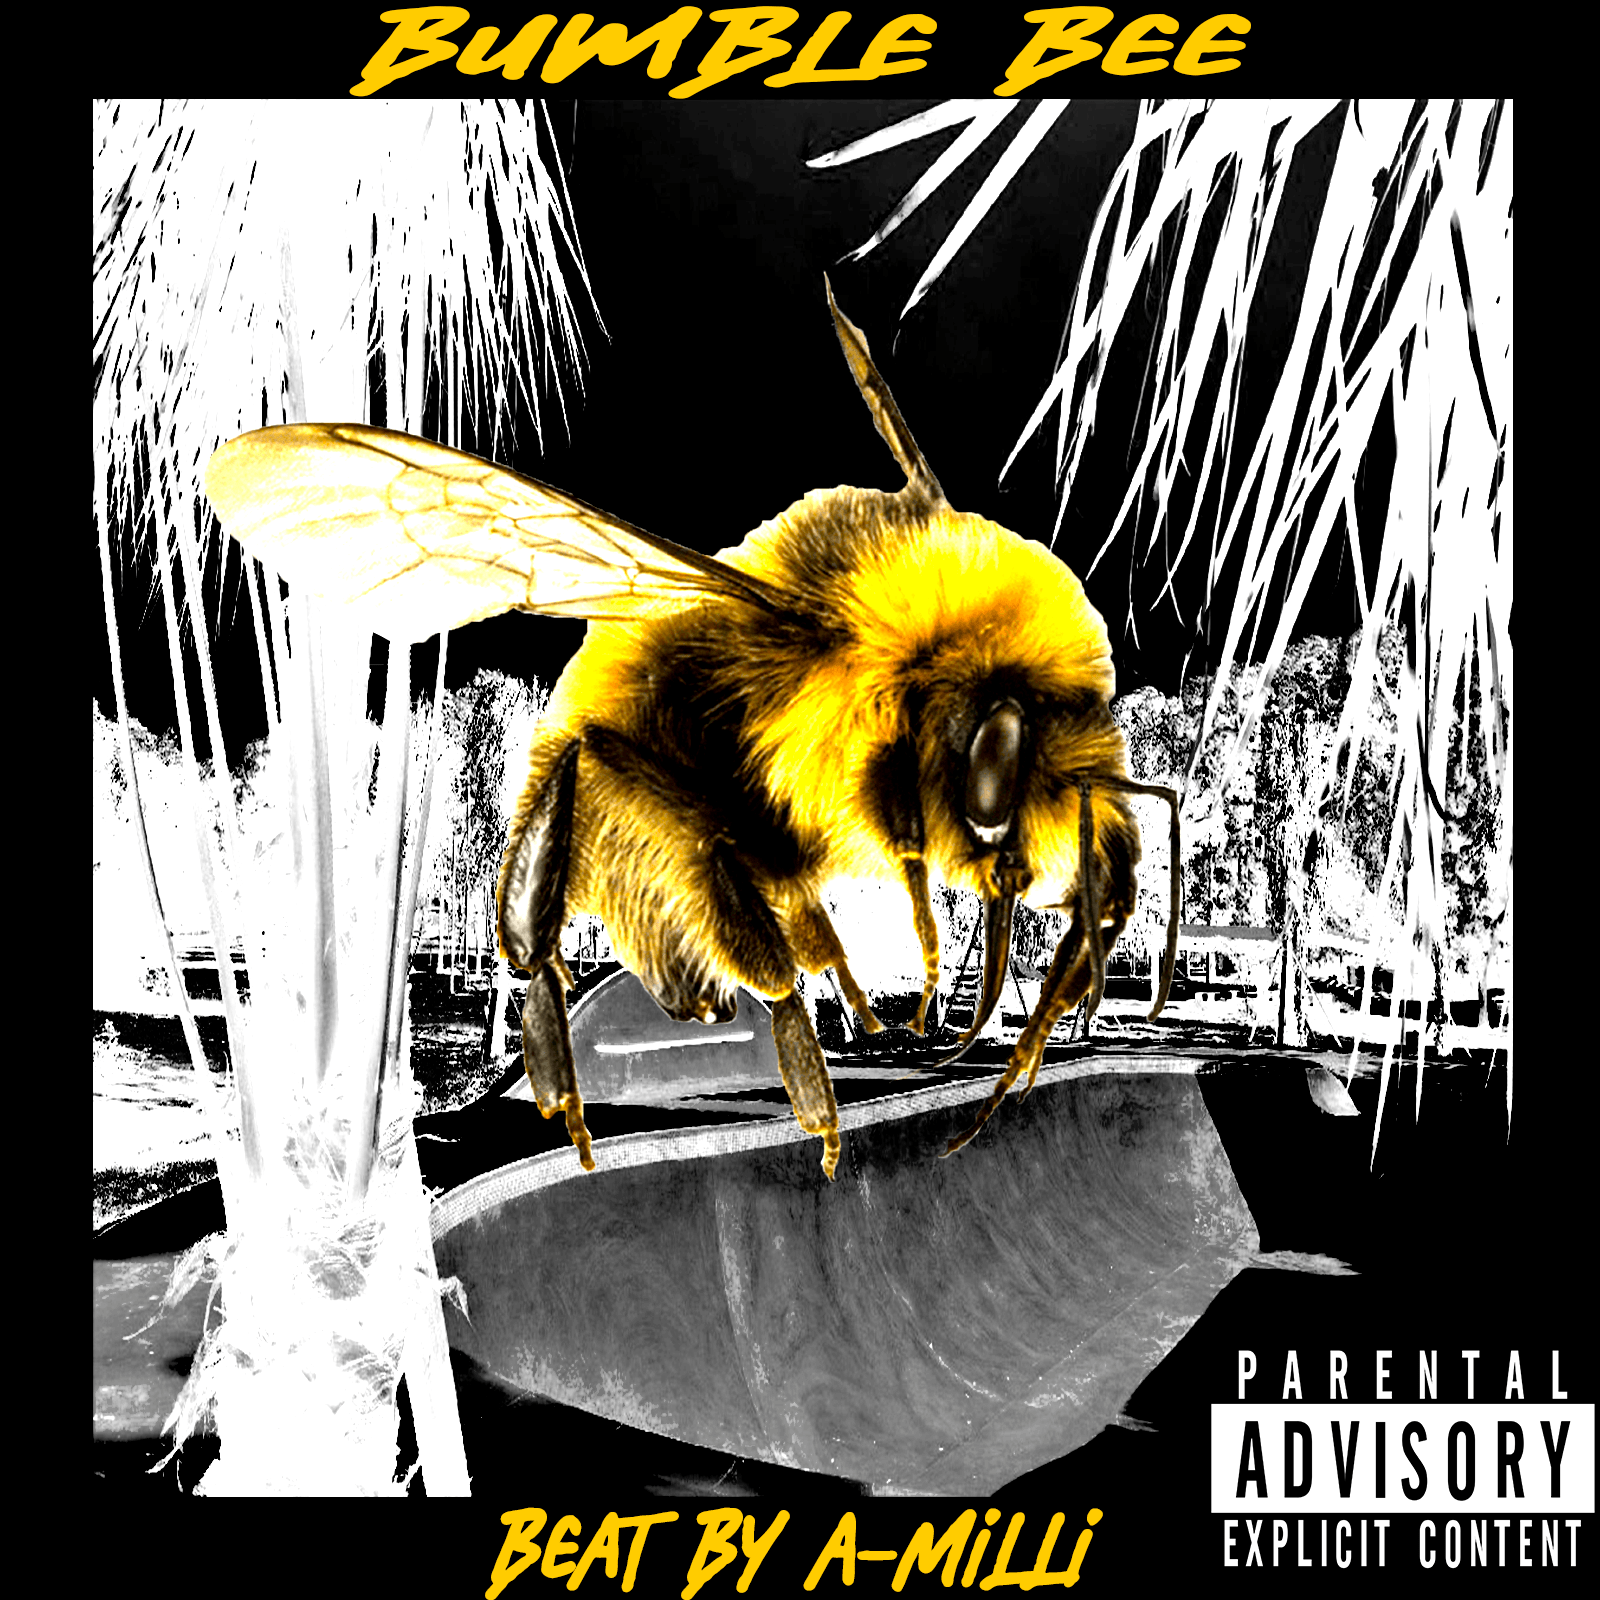 Bumble Bee by A-Milli